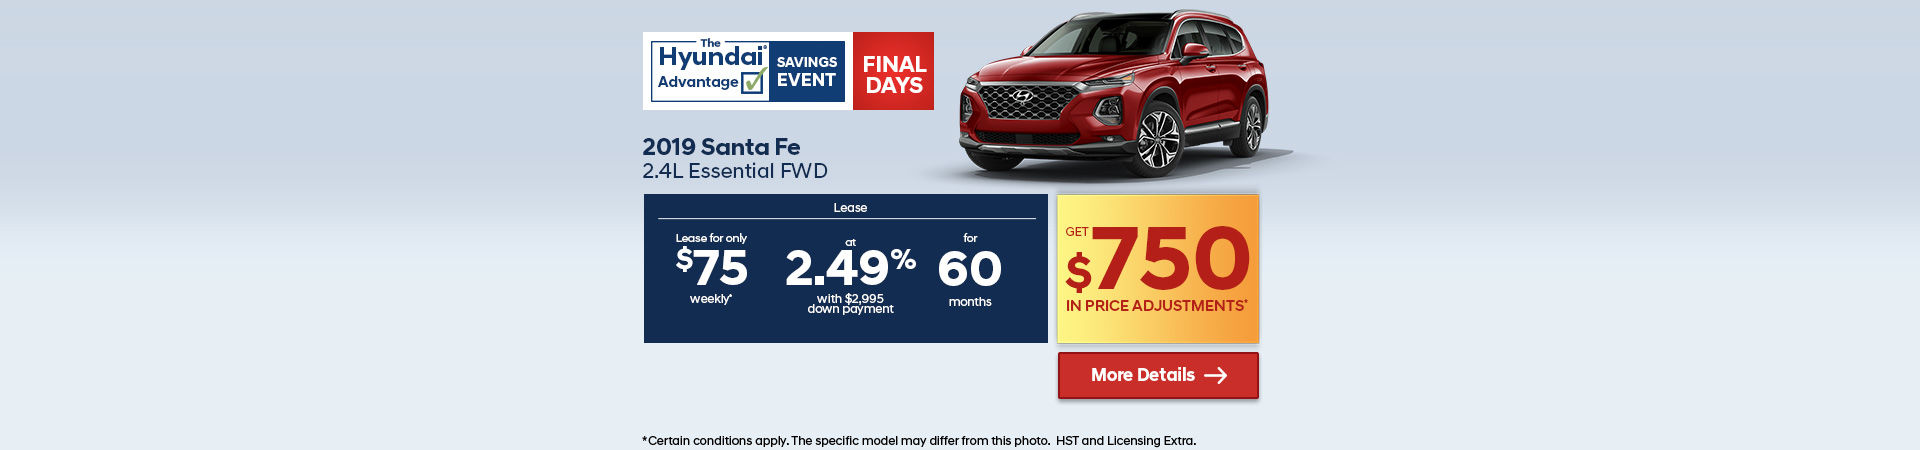 Get the 2019 Hyundai SantaFe